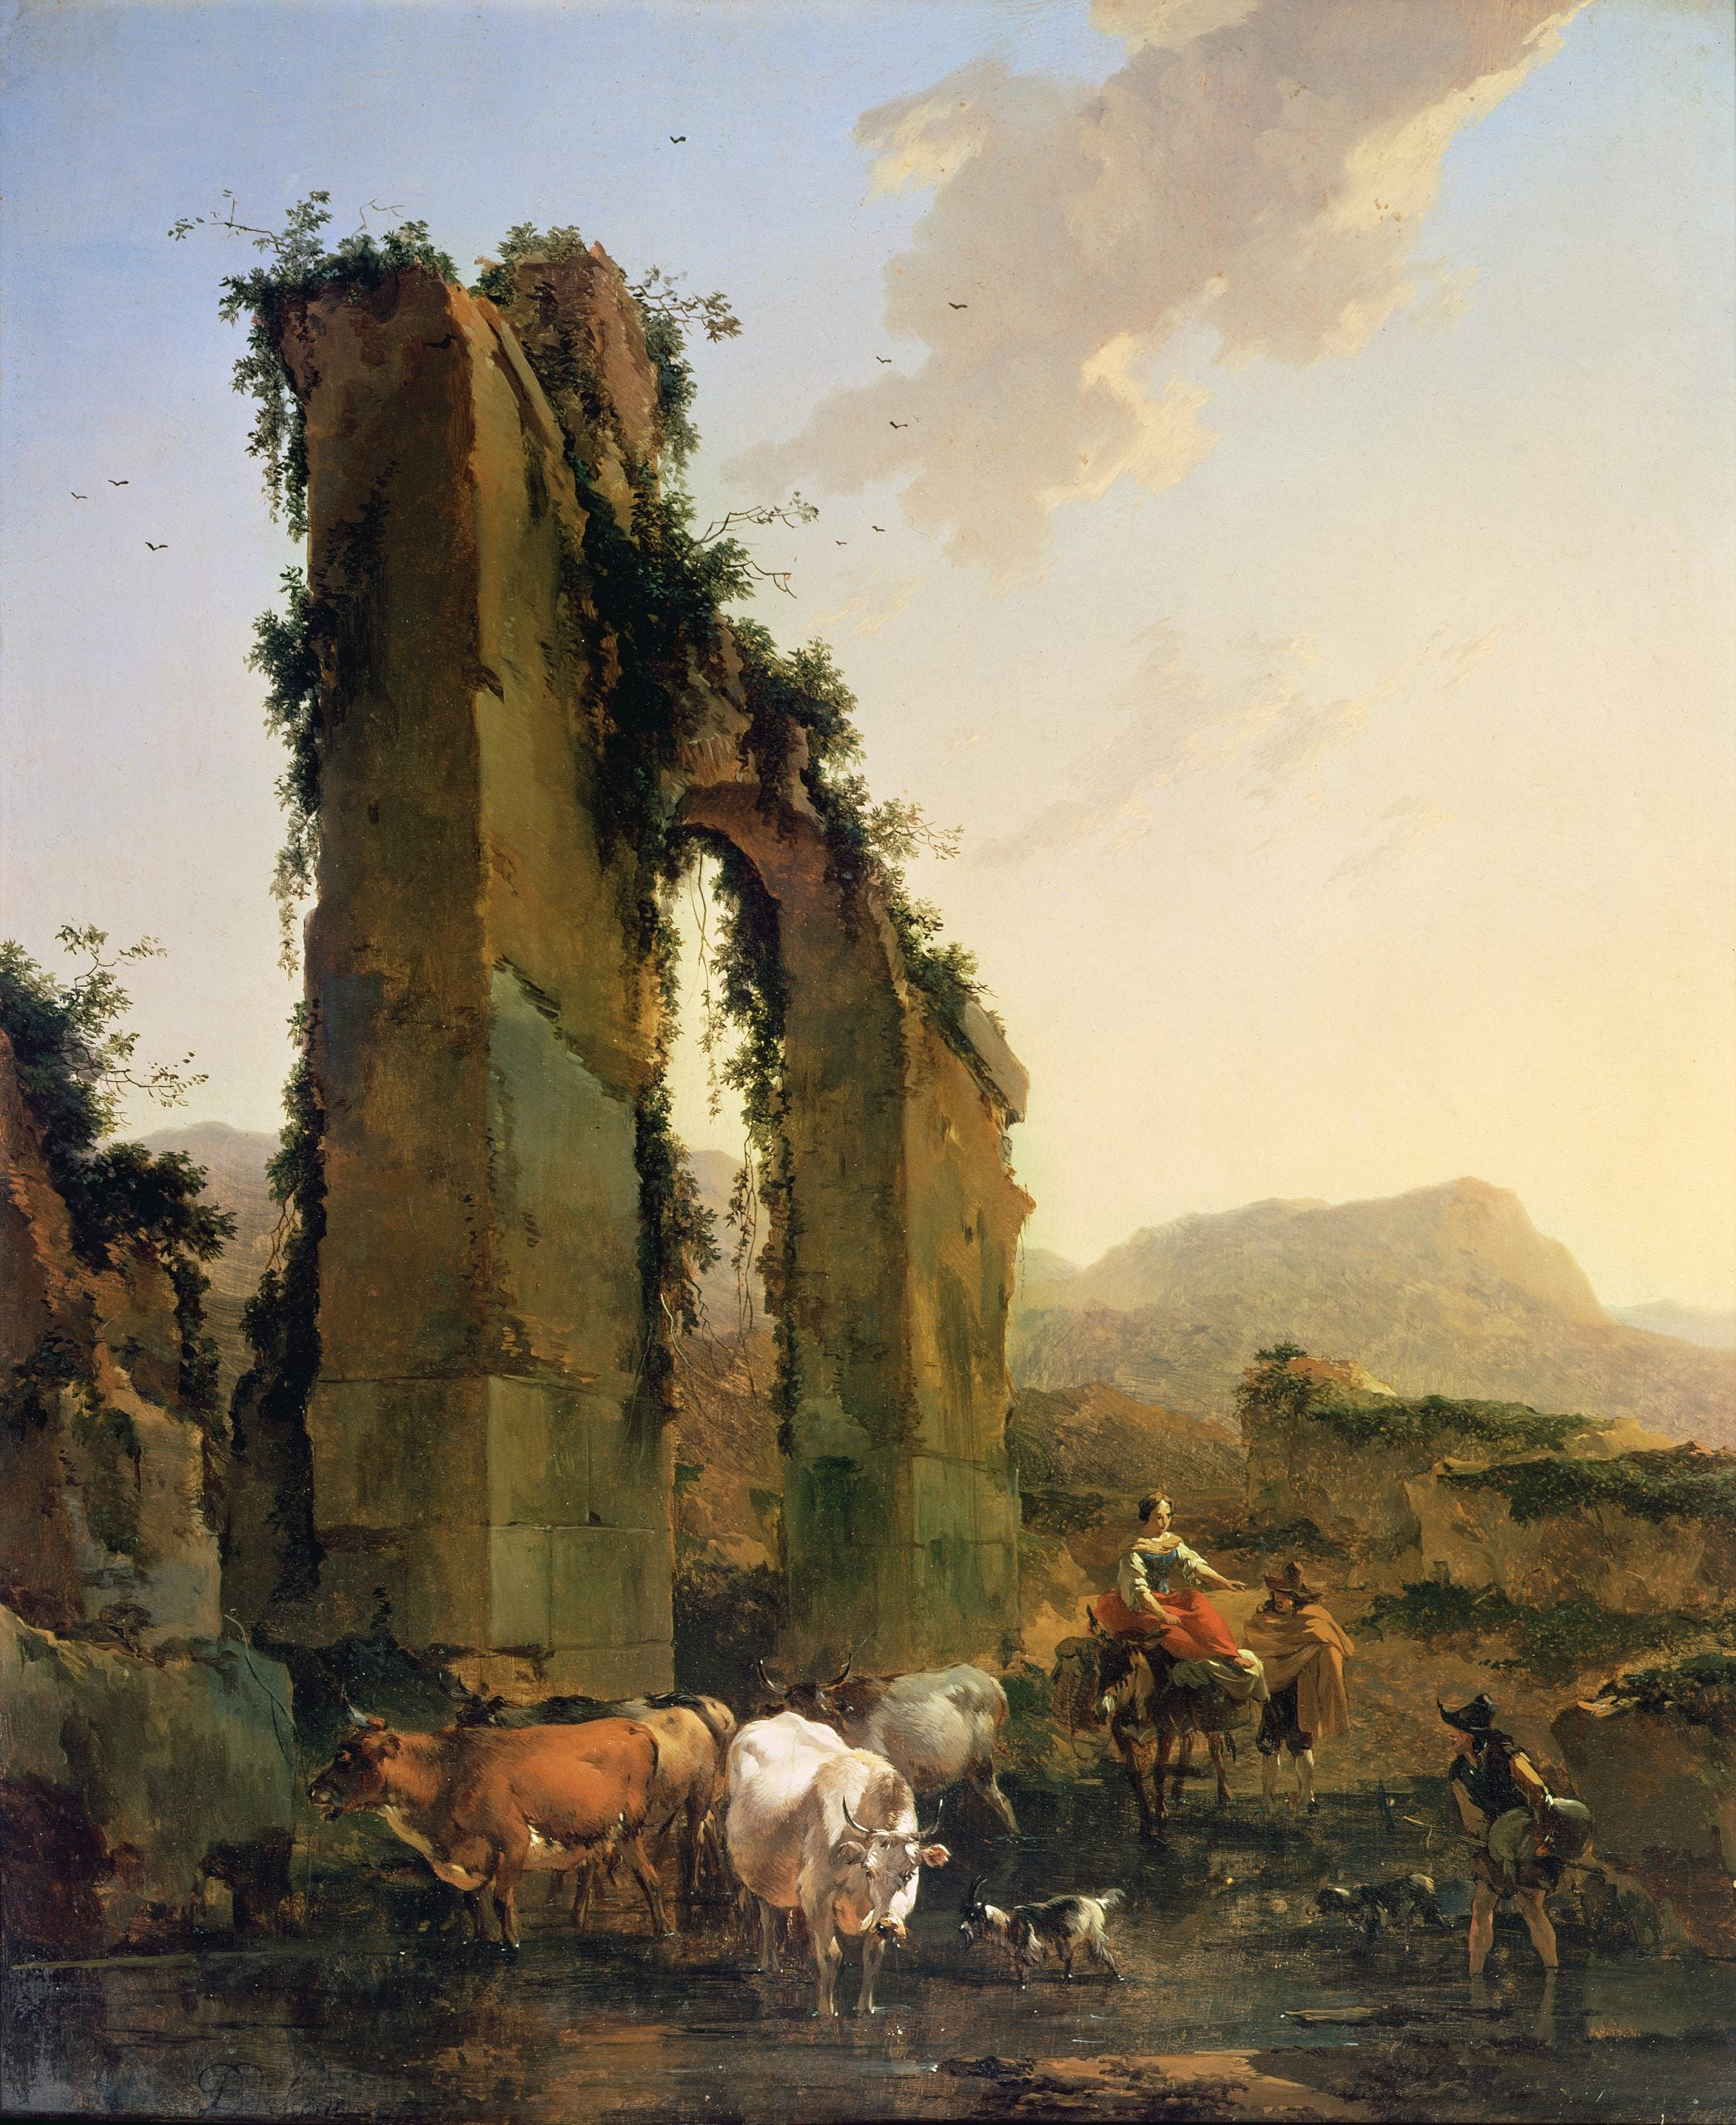 The greats outdoors: How Nicolaes Berchem offered vistas of a golden Arcadia